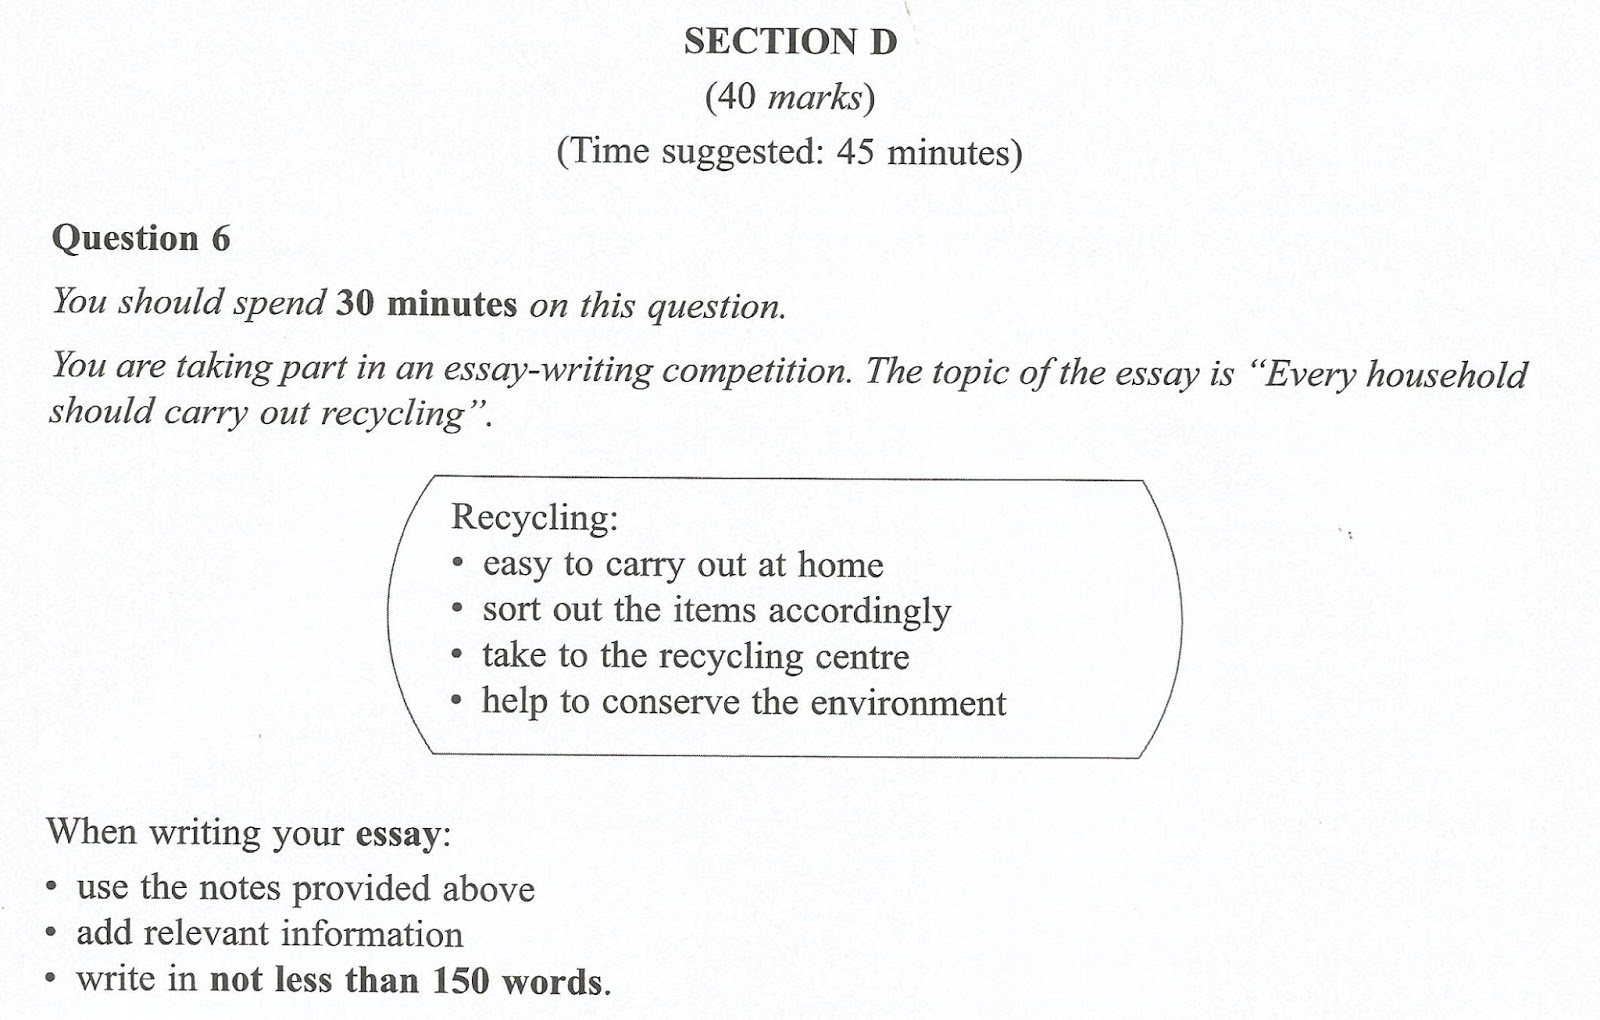 recycling essay Importance of recycling: recycling is important in today's world if we want to  leave this planet for our future generations it is good for the environment, since  we.